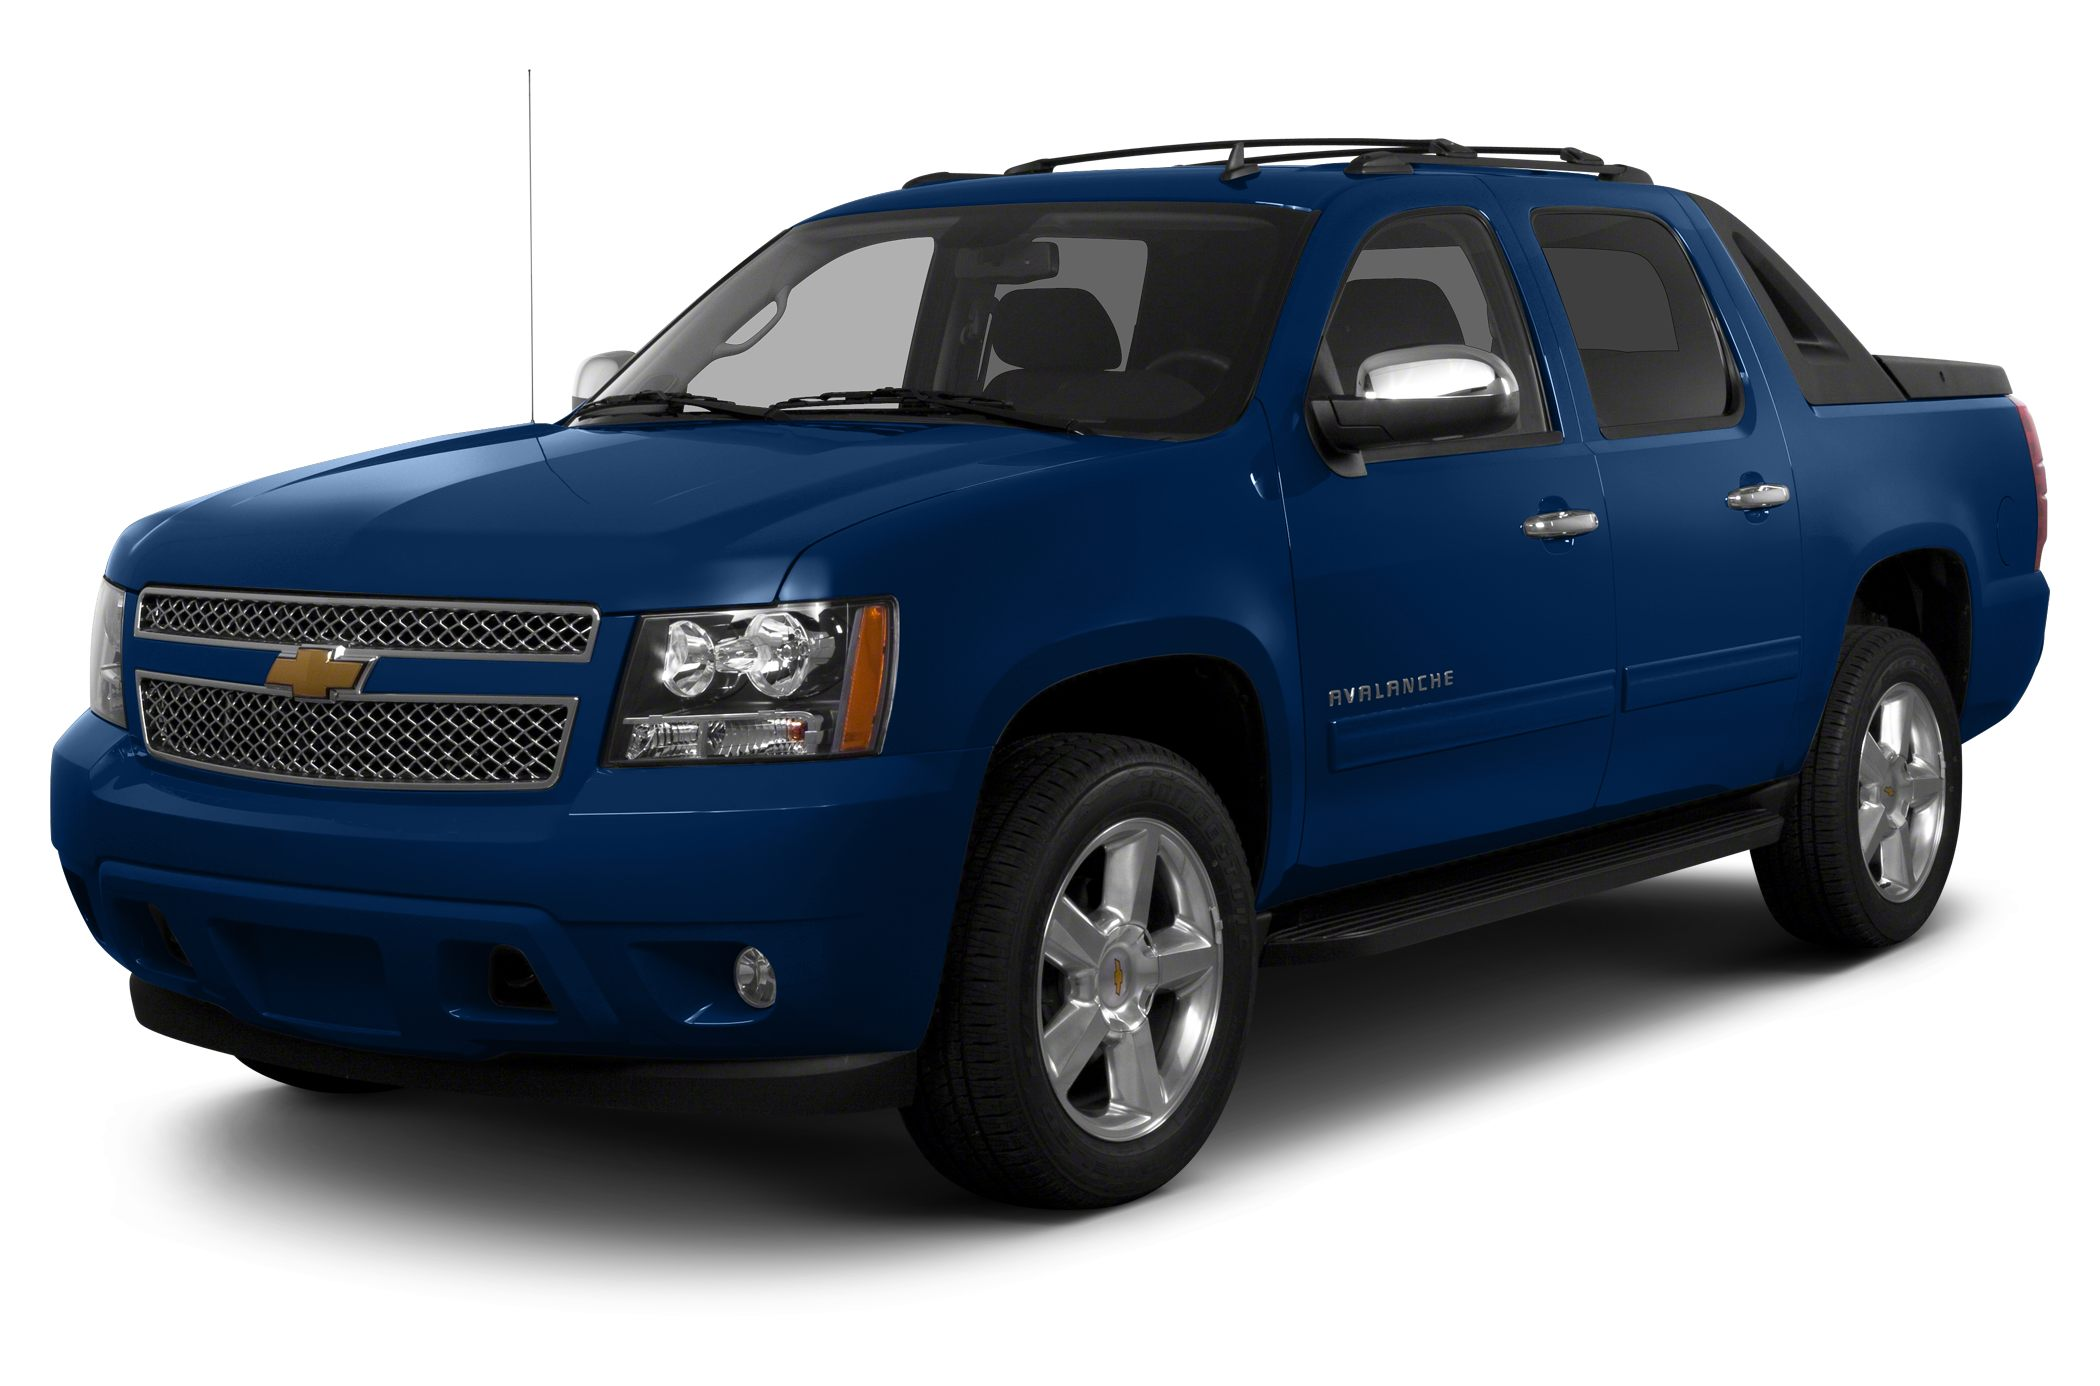 2013 Chevrolet Avalanche LTZ Crew Cab Pickup for sale in Garner for $0 with 29,201 miles